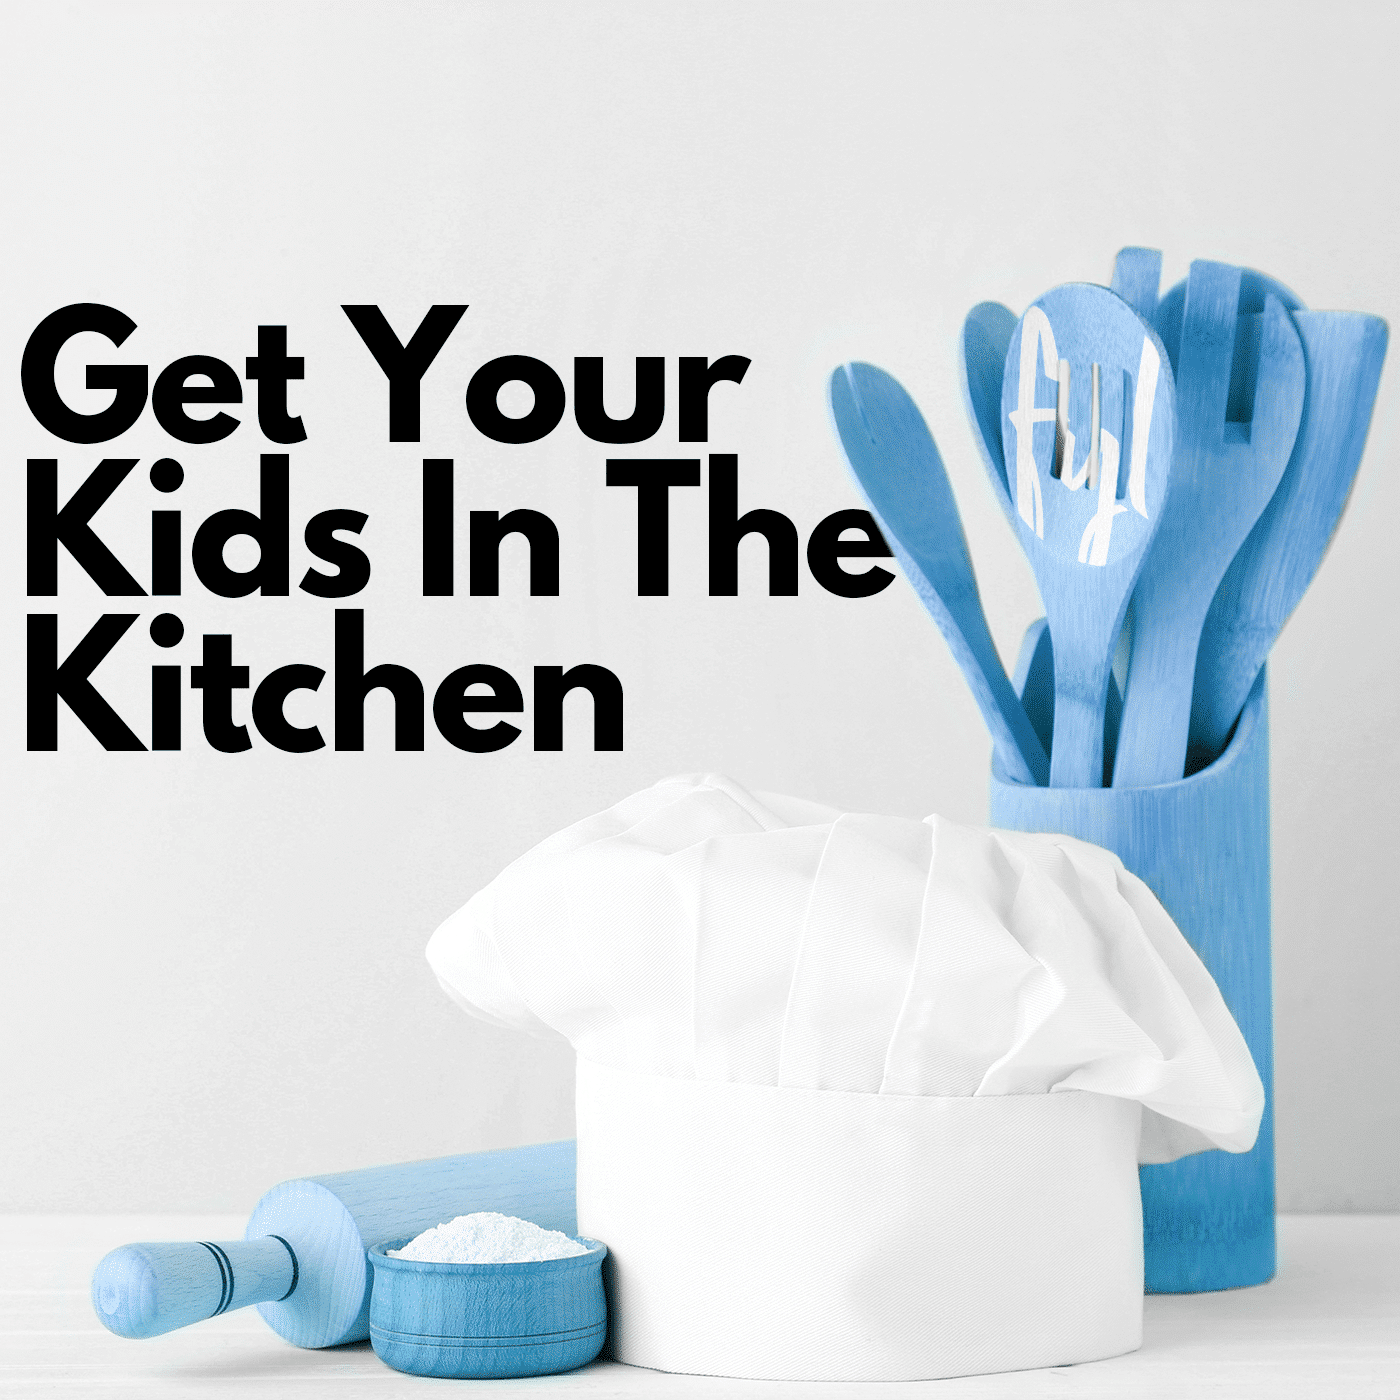 Get Your Kids in the Kitchen!